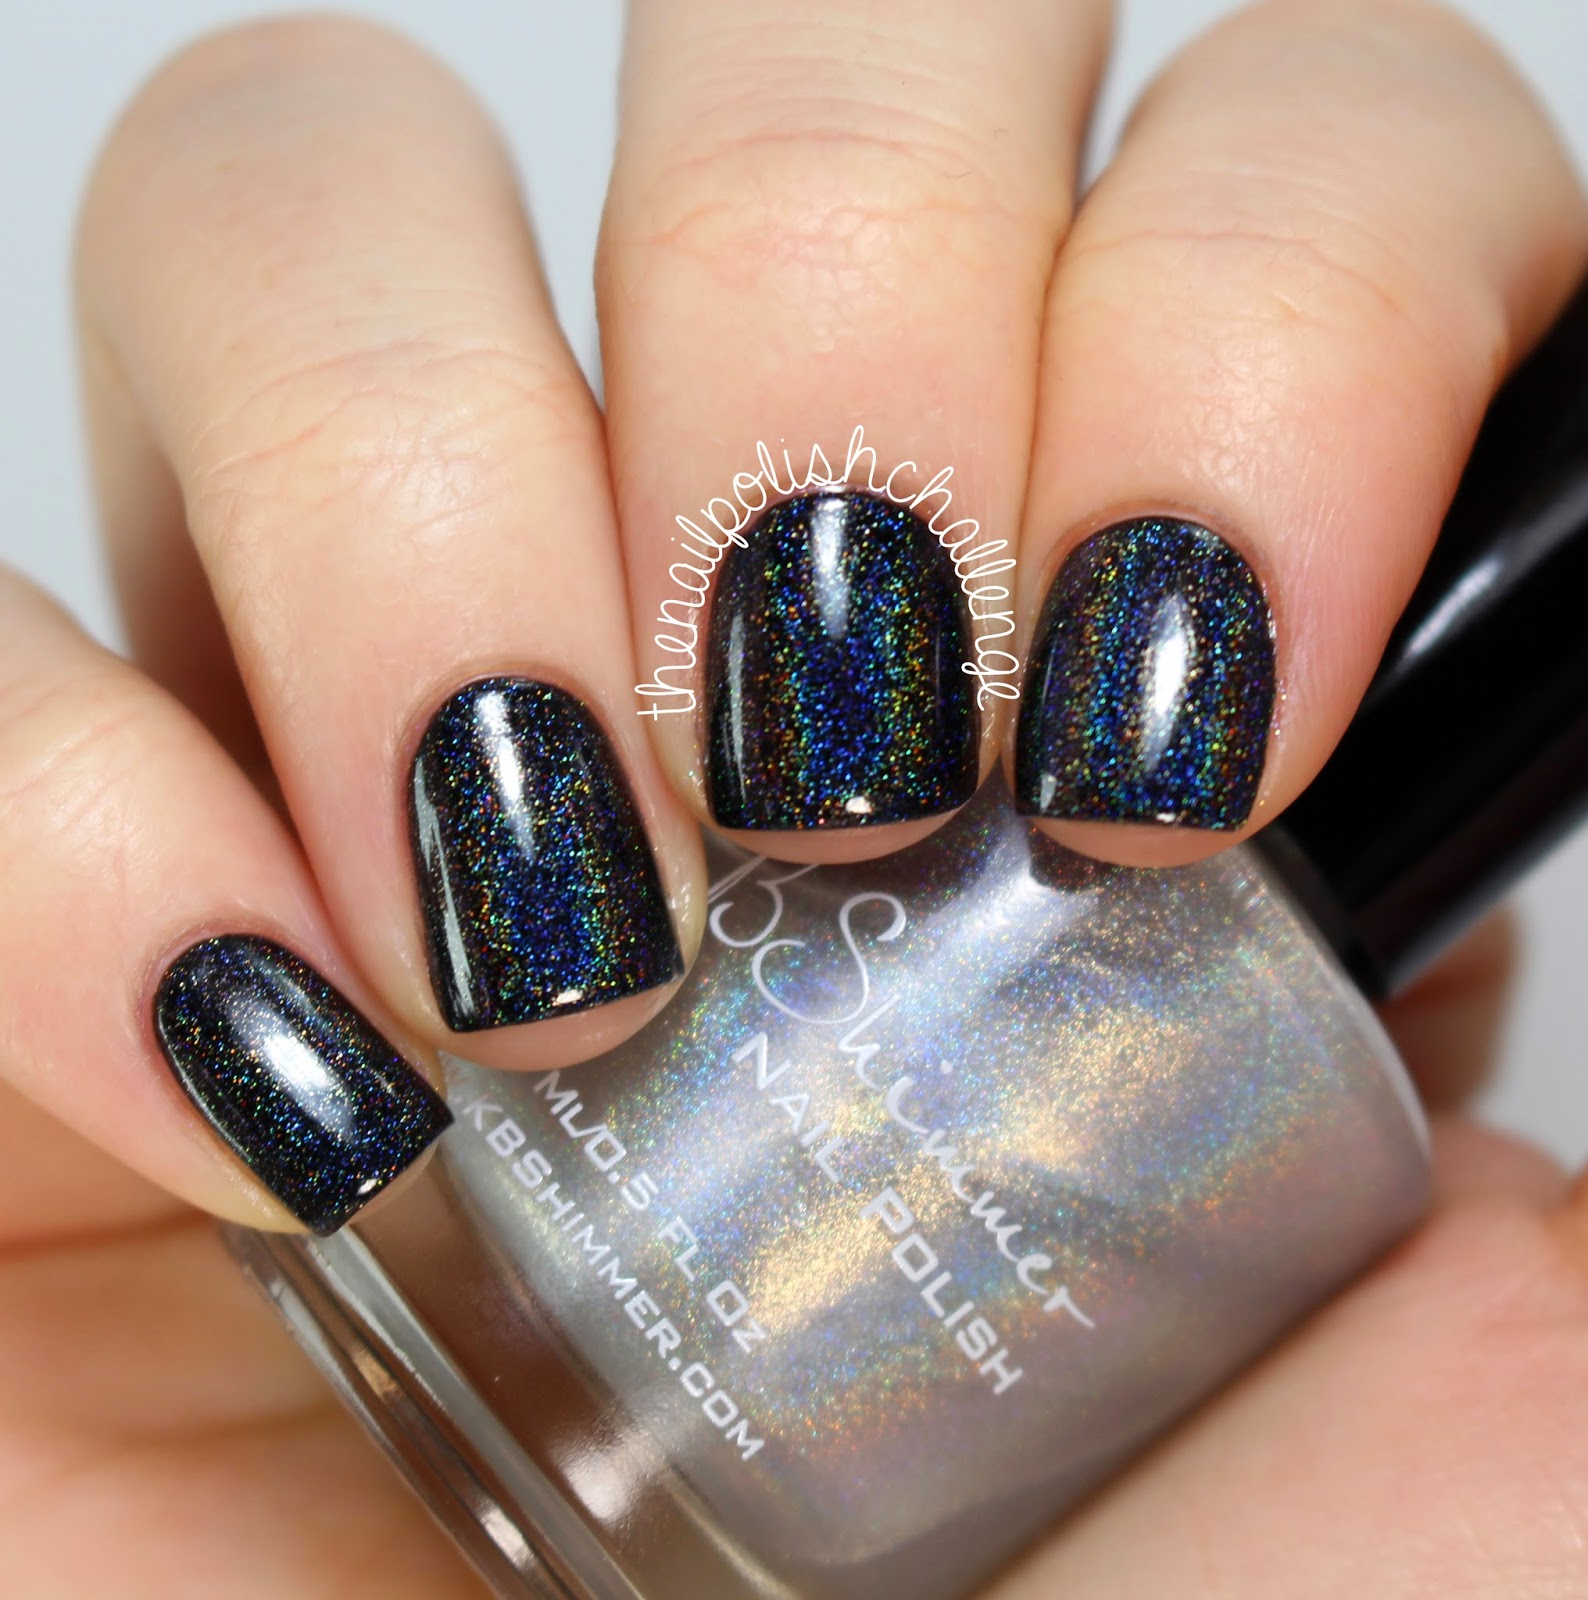 Shimmer And Sparkle Nail Polish: Kelli Marissa: KBShimmer Spring 2014 Collection Part 2